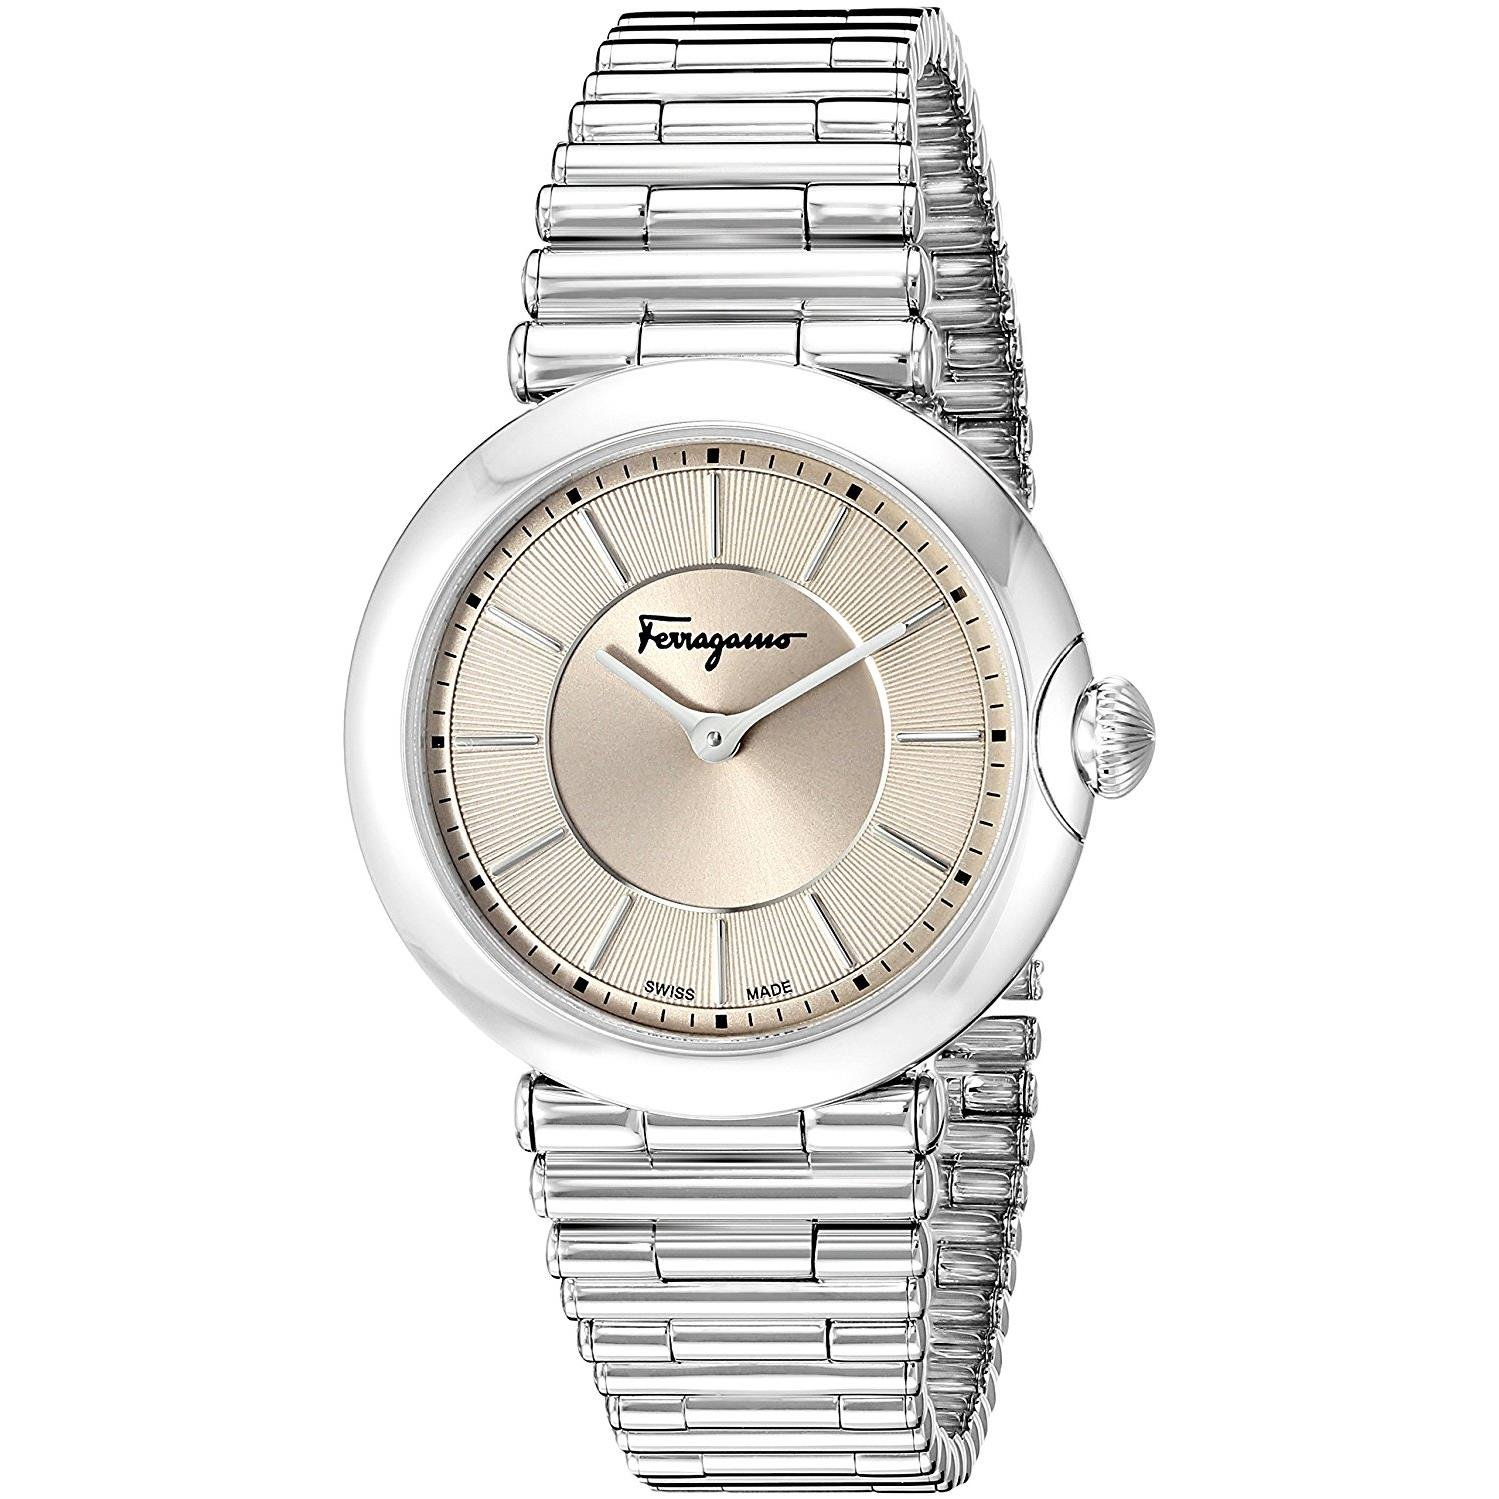 Salvatore Ferragamo Women's FIN040015 Style Analog Display Quartz Silver Watch by Salvatore Ferragamo